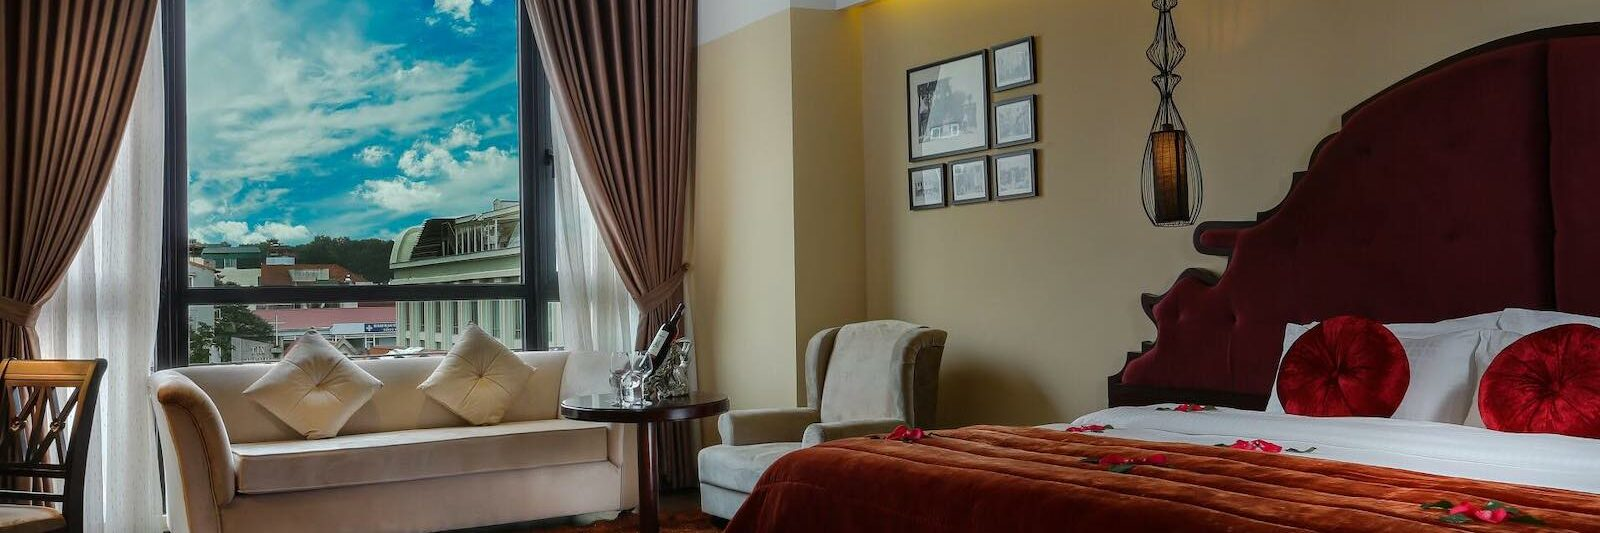 Image of a guestroom in the Hanoi Marvellous Hotel & Spa in Hanoi, Vietnam